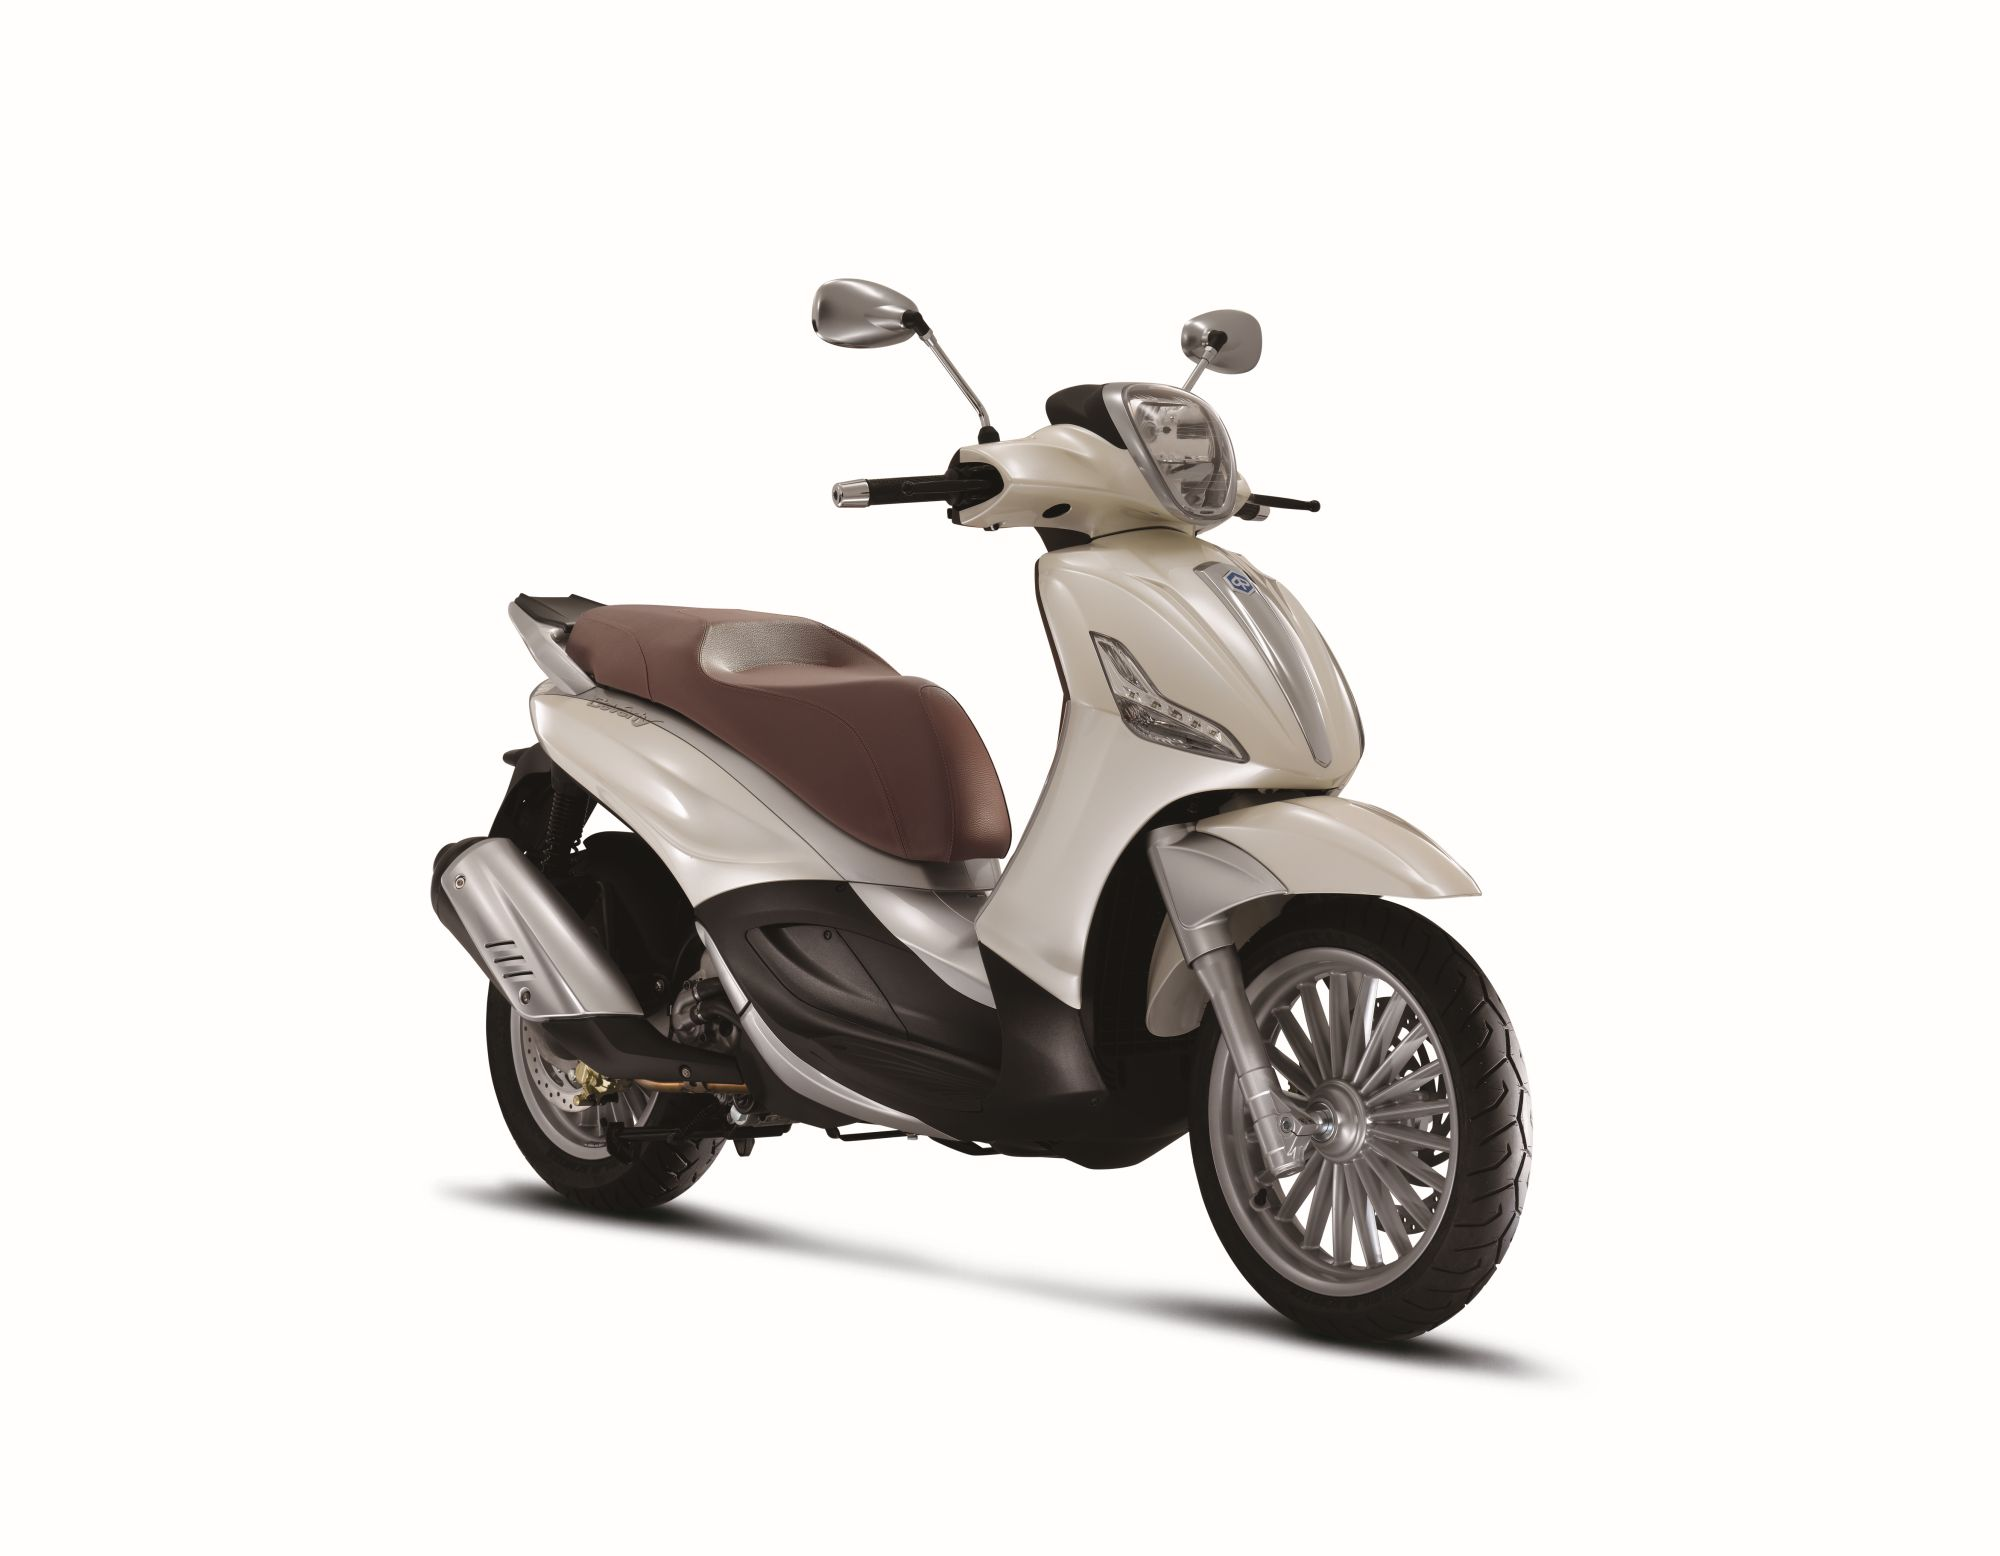 Automatic Transmission Motorcycle >> Piaggio Beverly 300 i.e. - All technical Data of the Model Beverly 300 i.e. from Piaggio